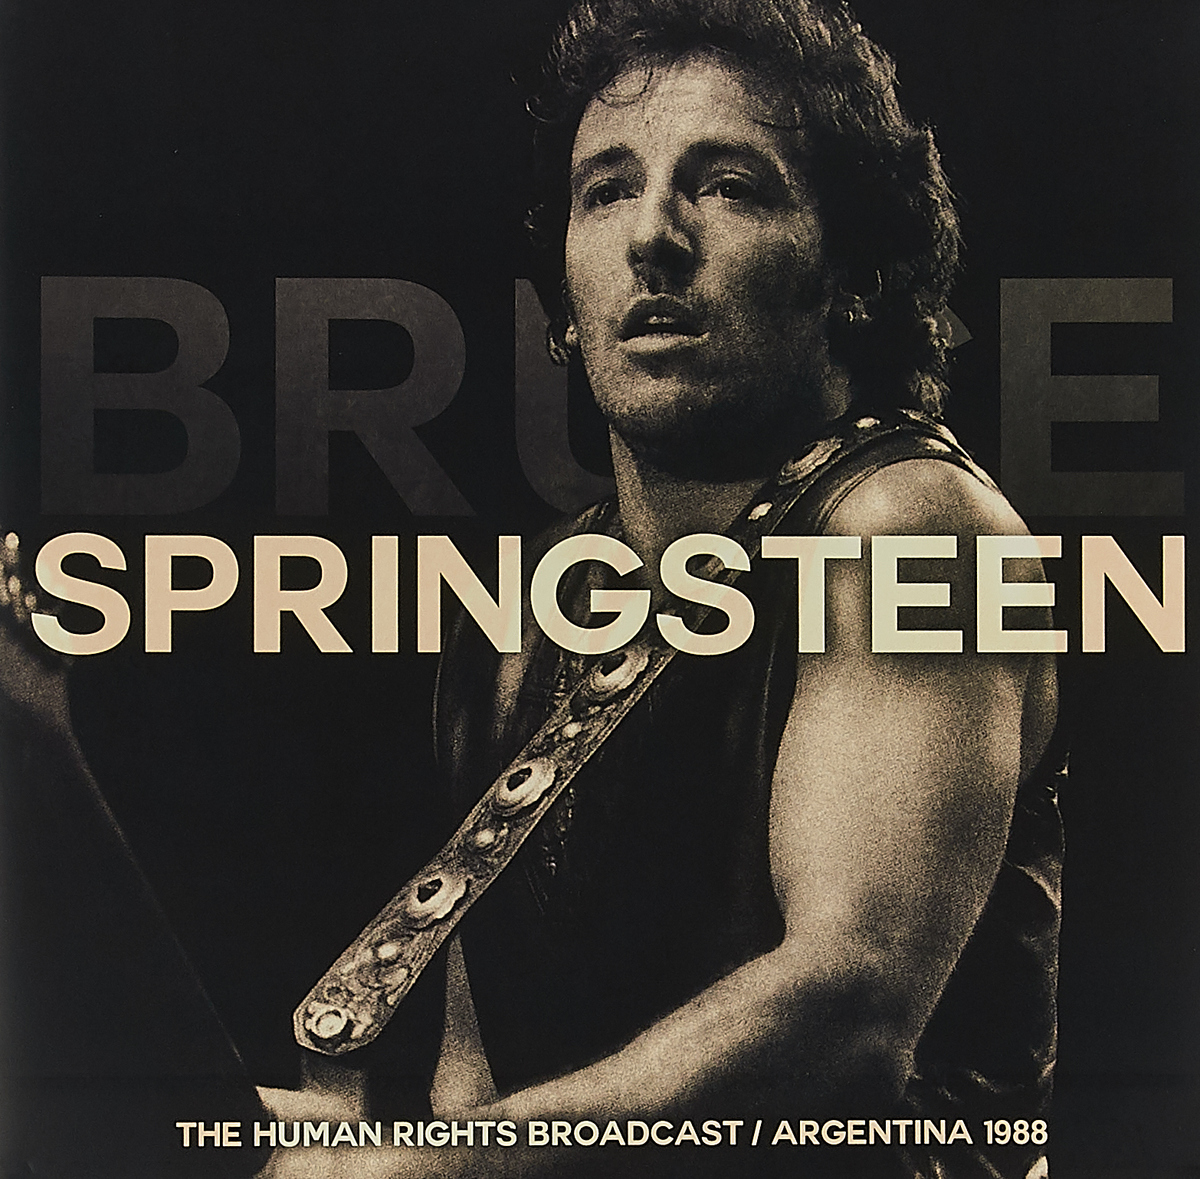 Брюс Спрингстин Bruce Springsteen. The Human Rights Broadcast / Argentina 1988 (2 LP) брюс спрингстин bruce springsteen the wild the innocent and the e street shuffle lp